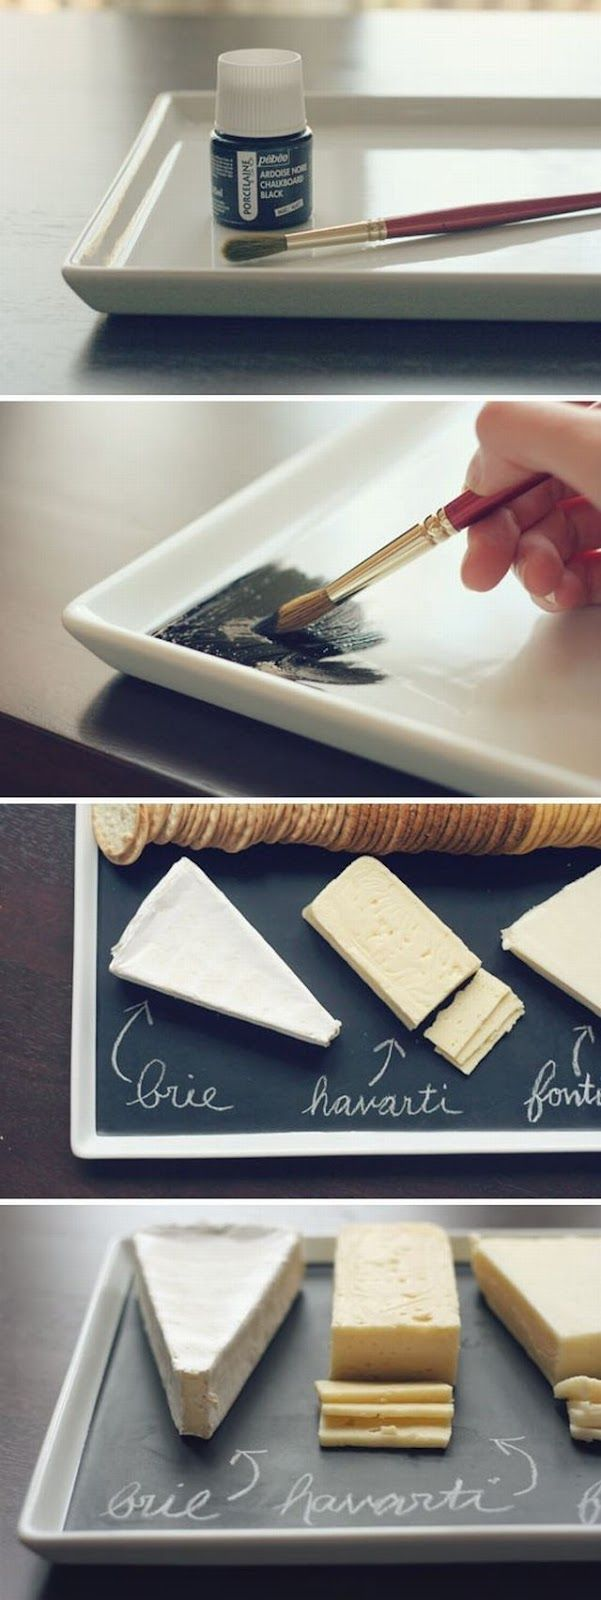 Blackboard painted tray - SO clever